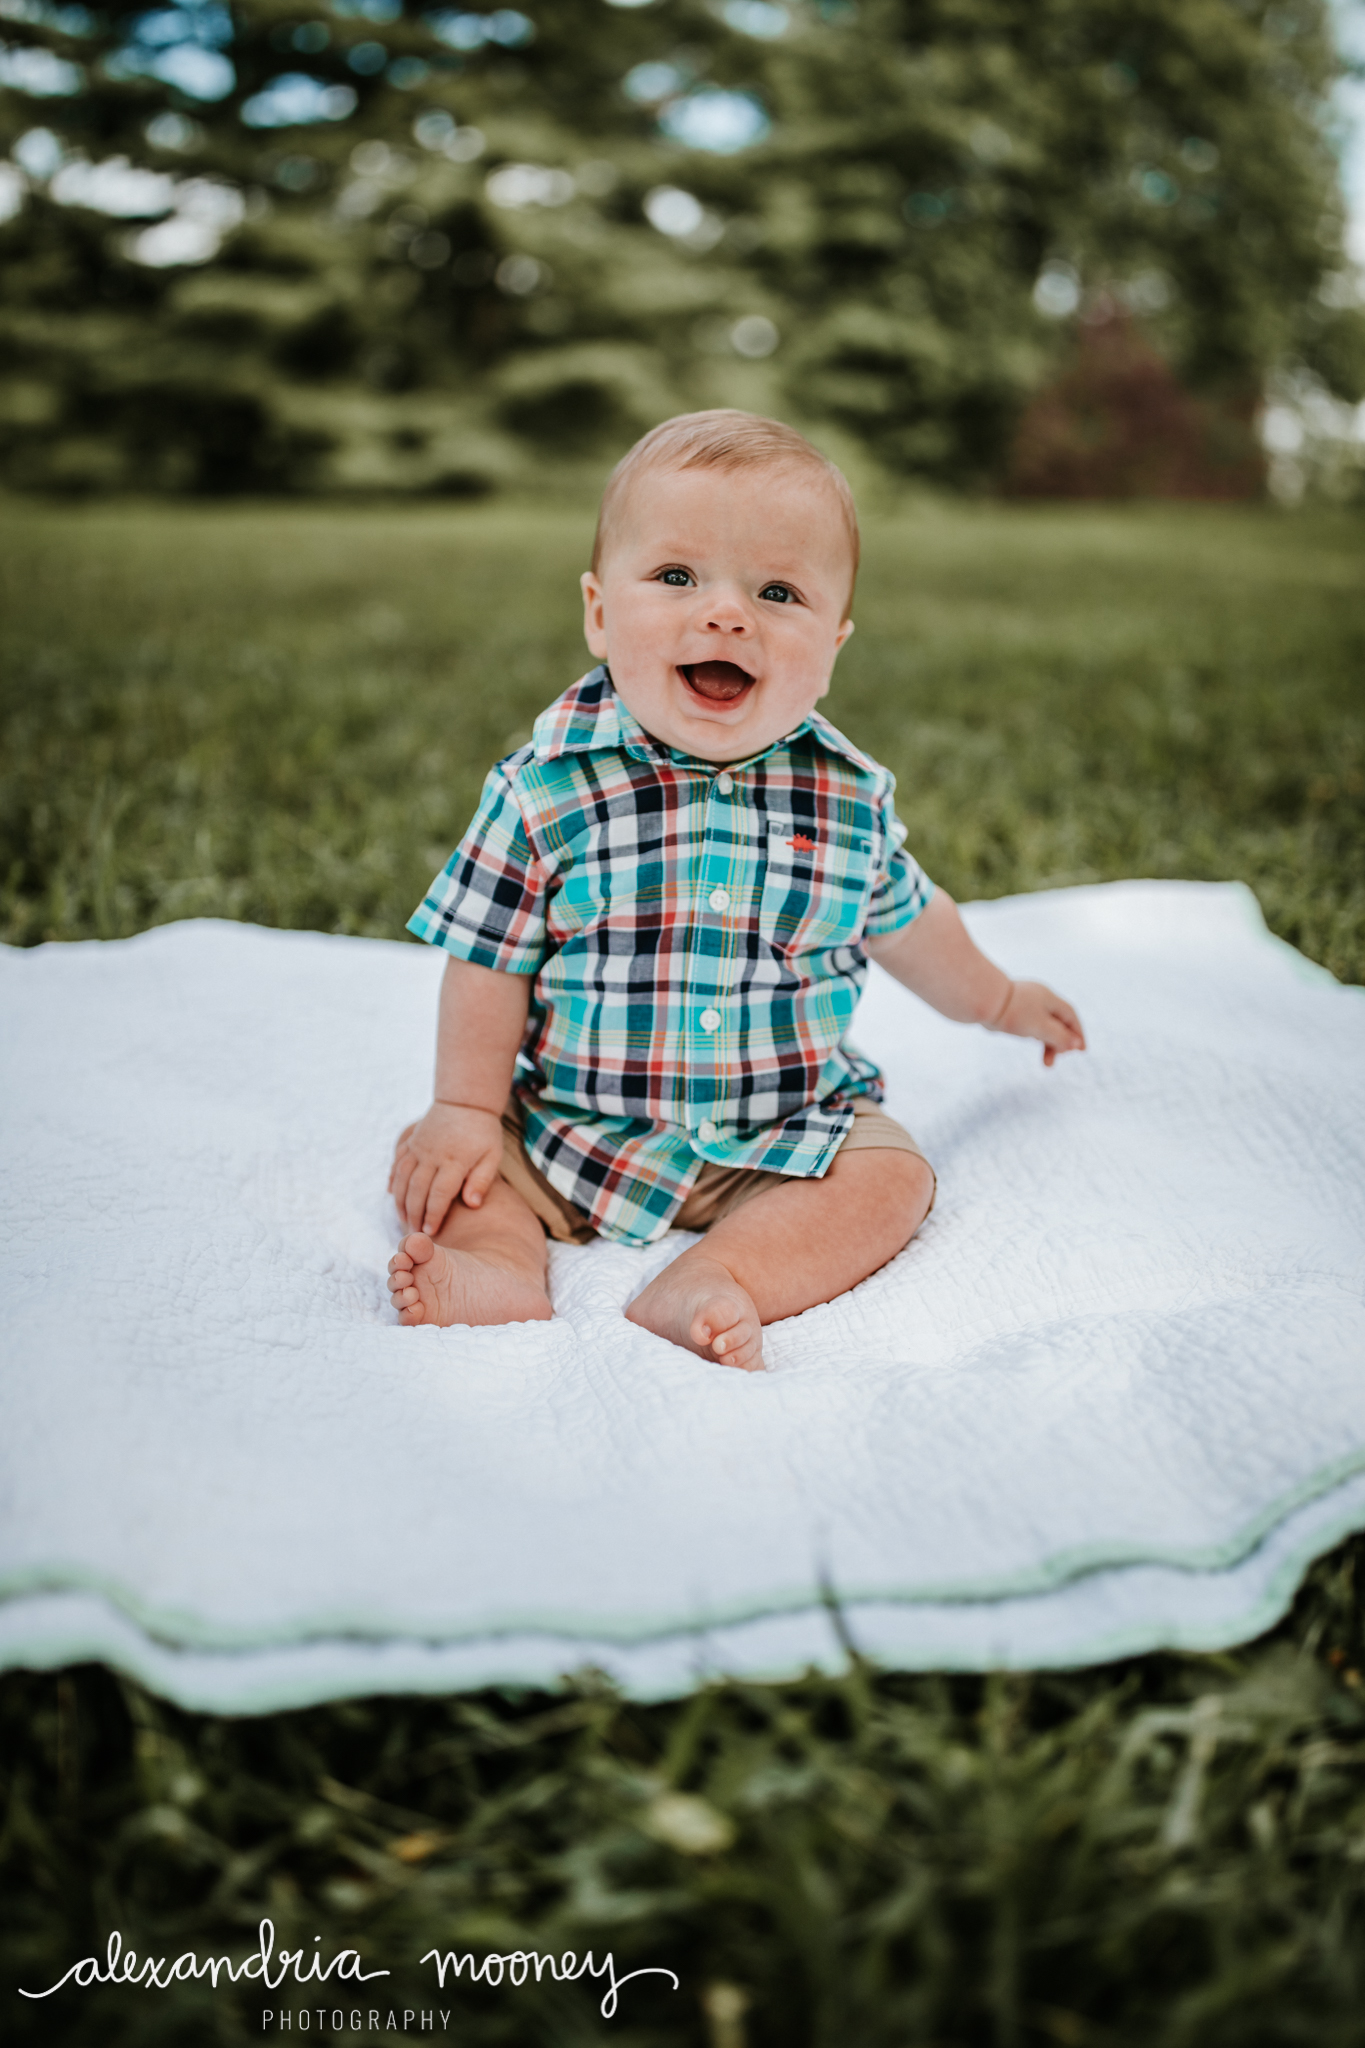 Connor_6monthsold_WATERMARKED-2.jpg